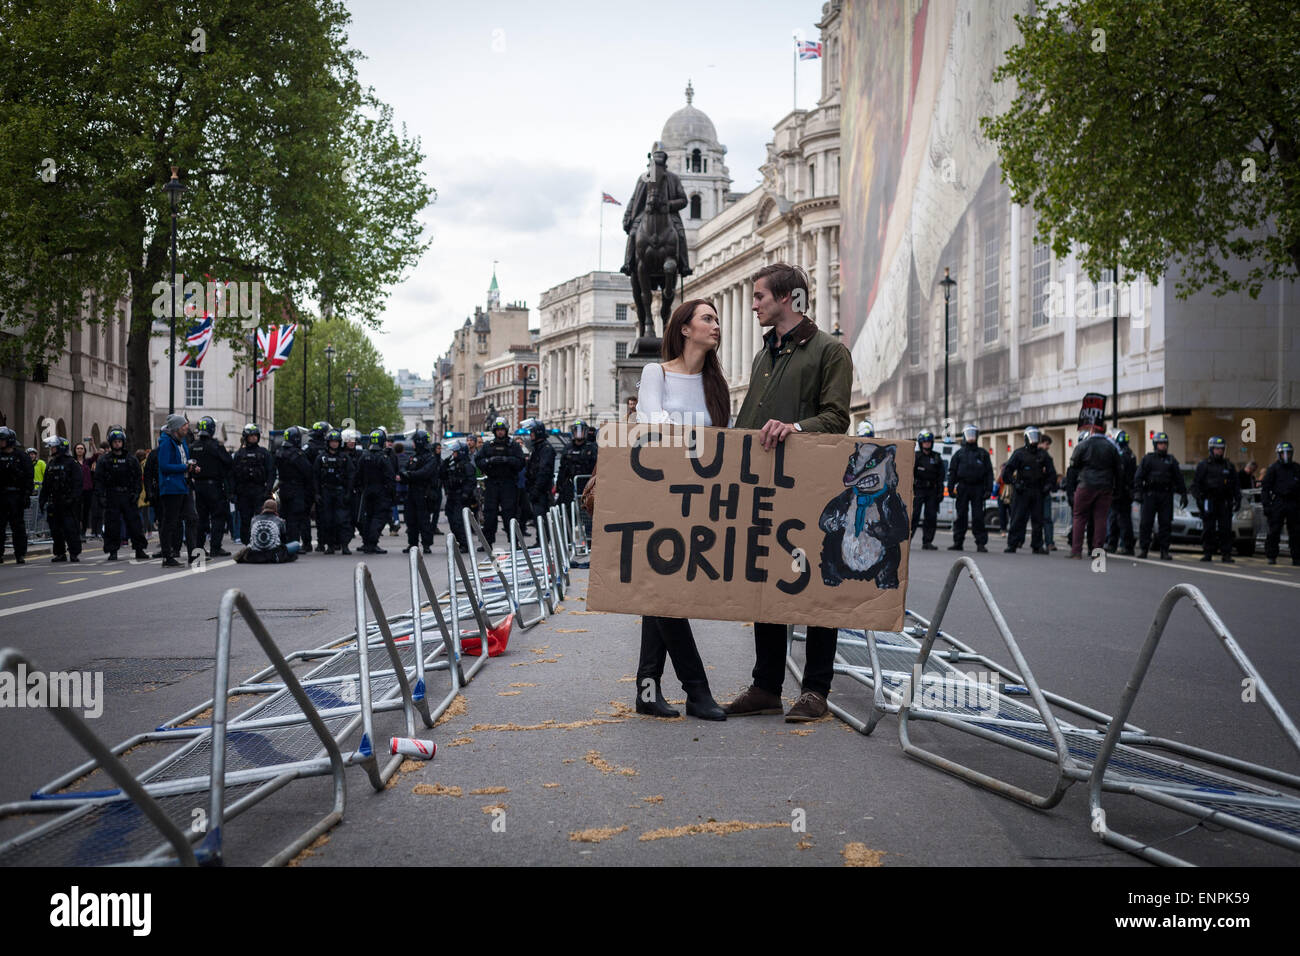 London, UK. 9th May, 2015. A pair of demonstrators hold a placard on Whitehall during an anti-Tory protest in central - Stock Image